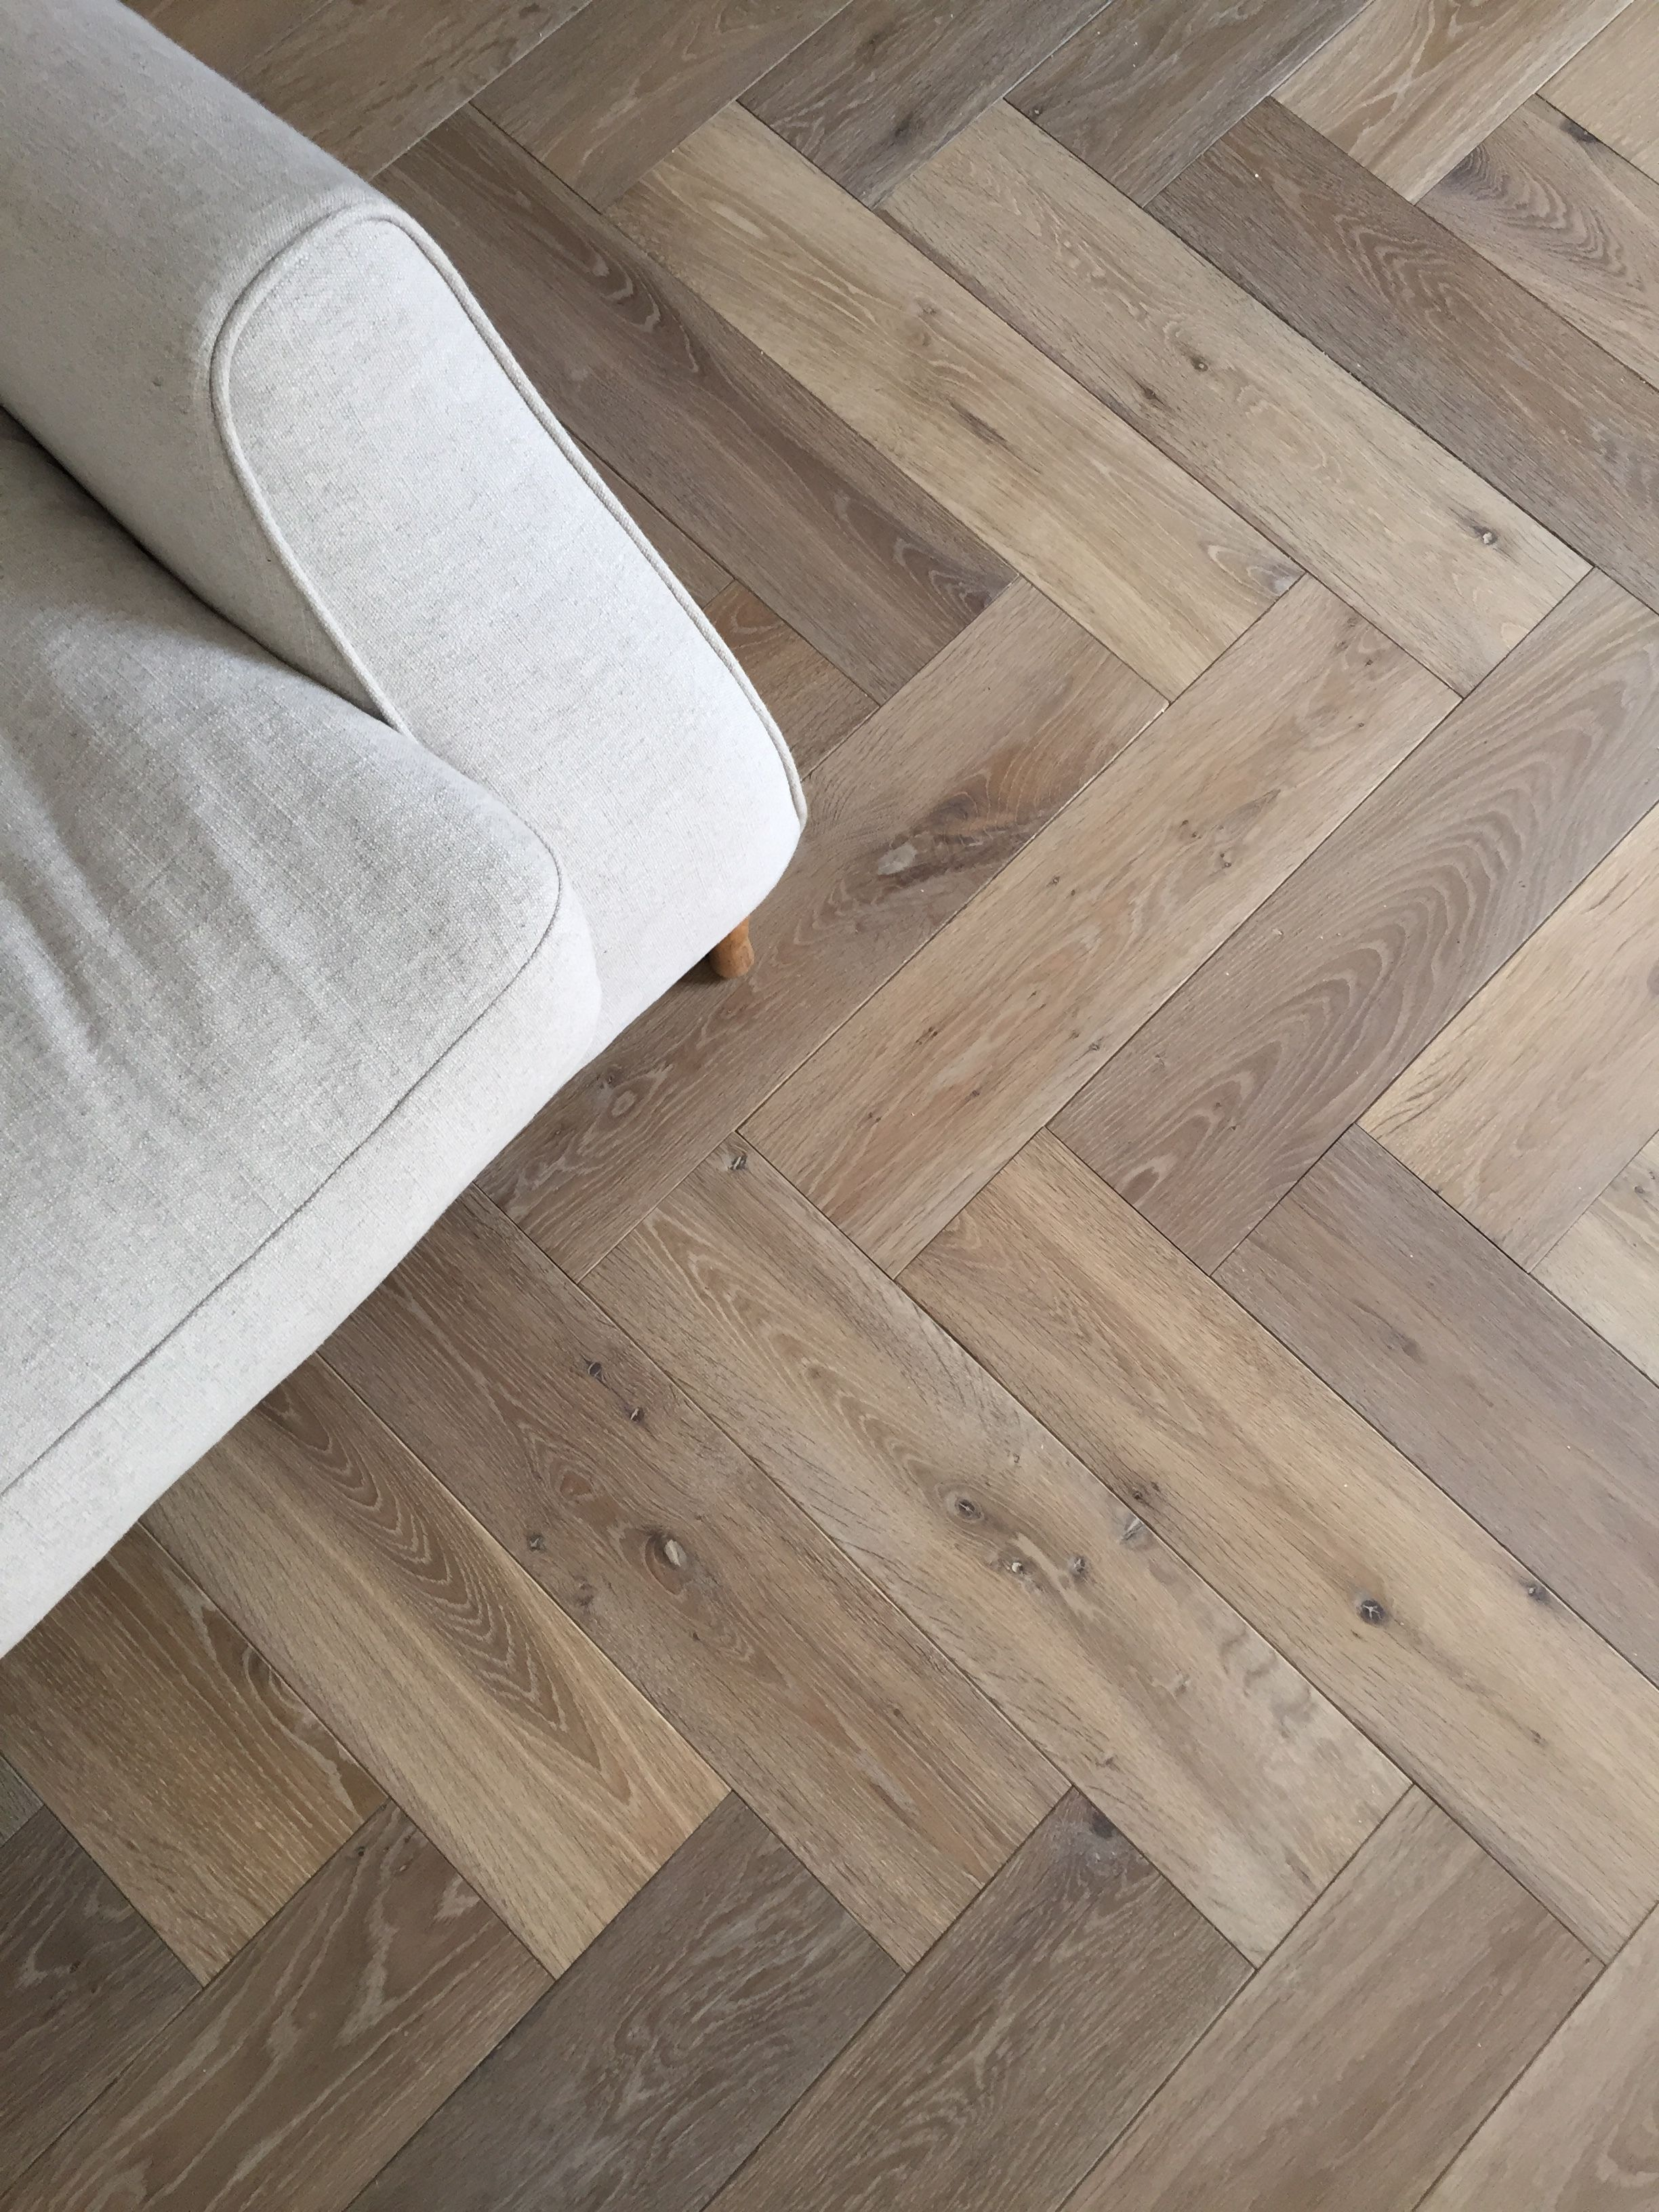 Our bestseller Oak Dyrham comes in wide